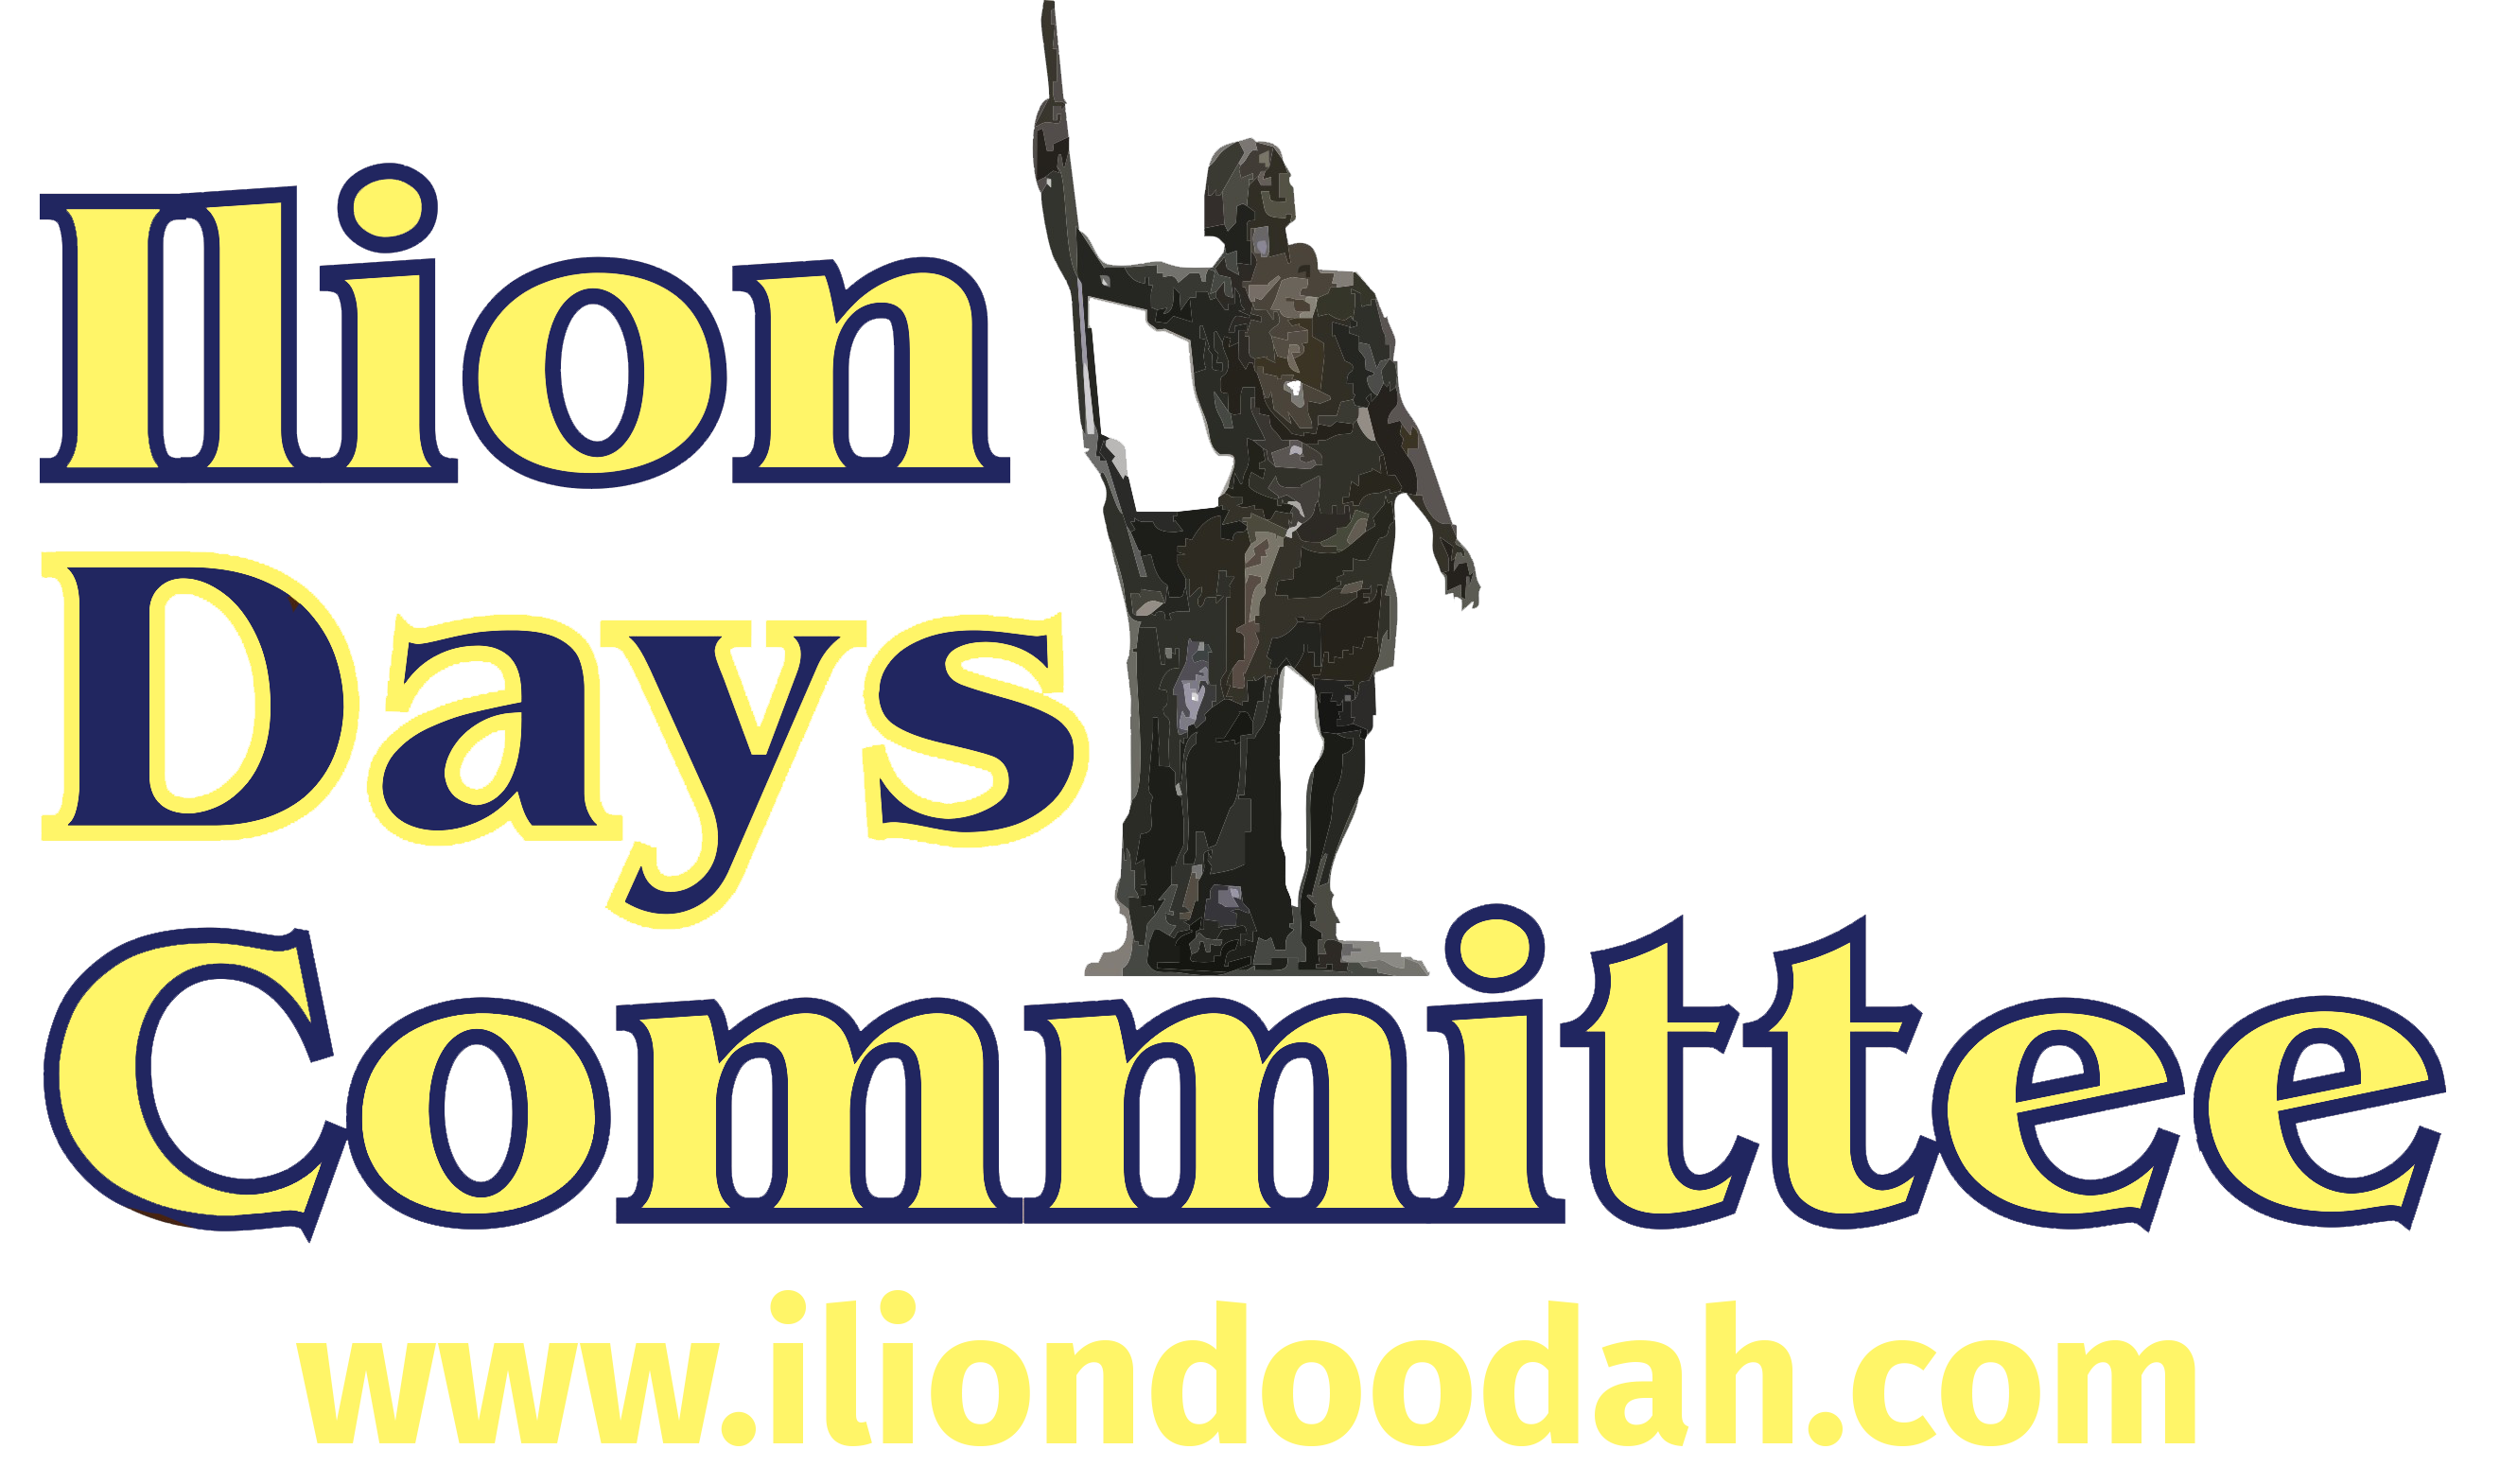 Ilion Days Committee